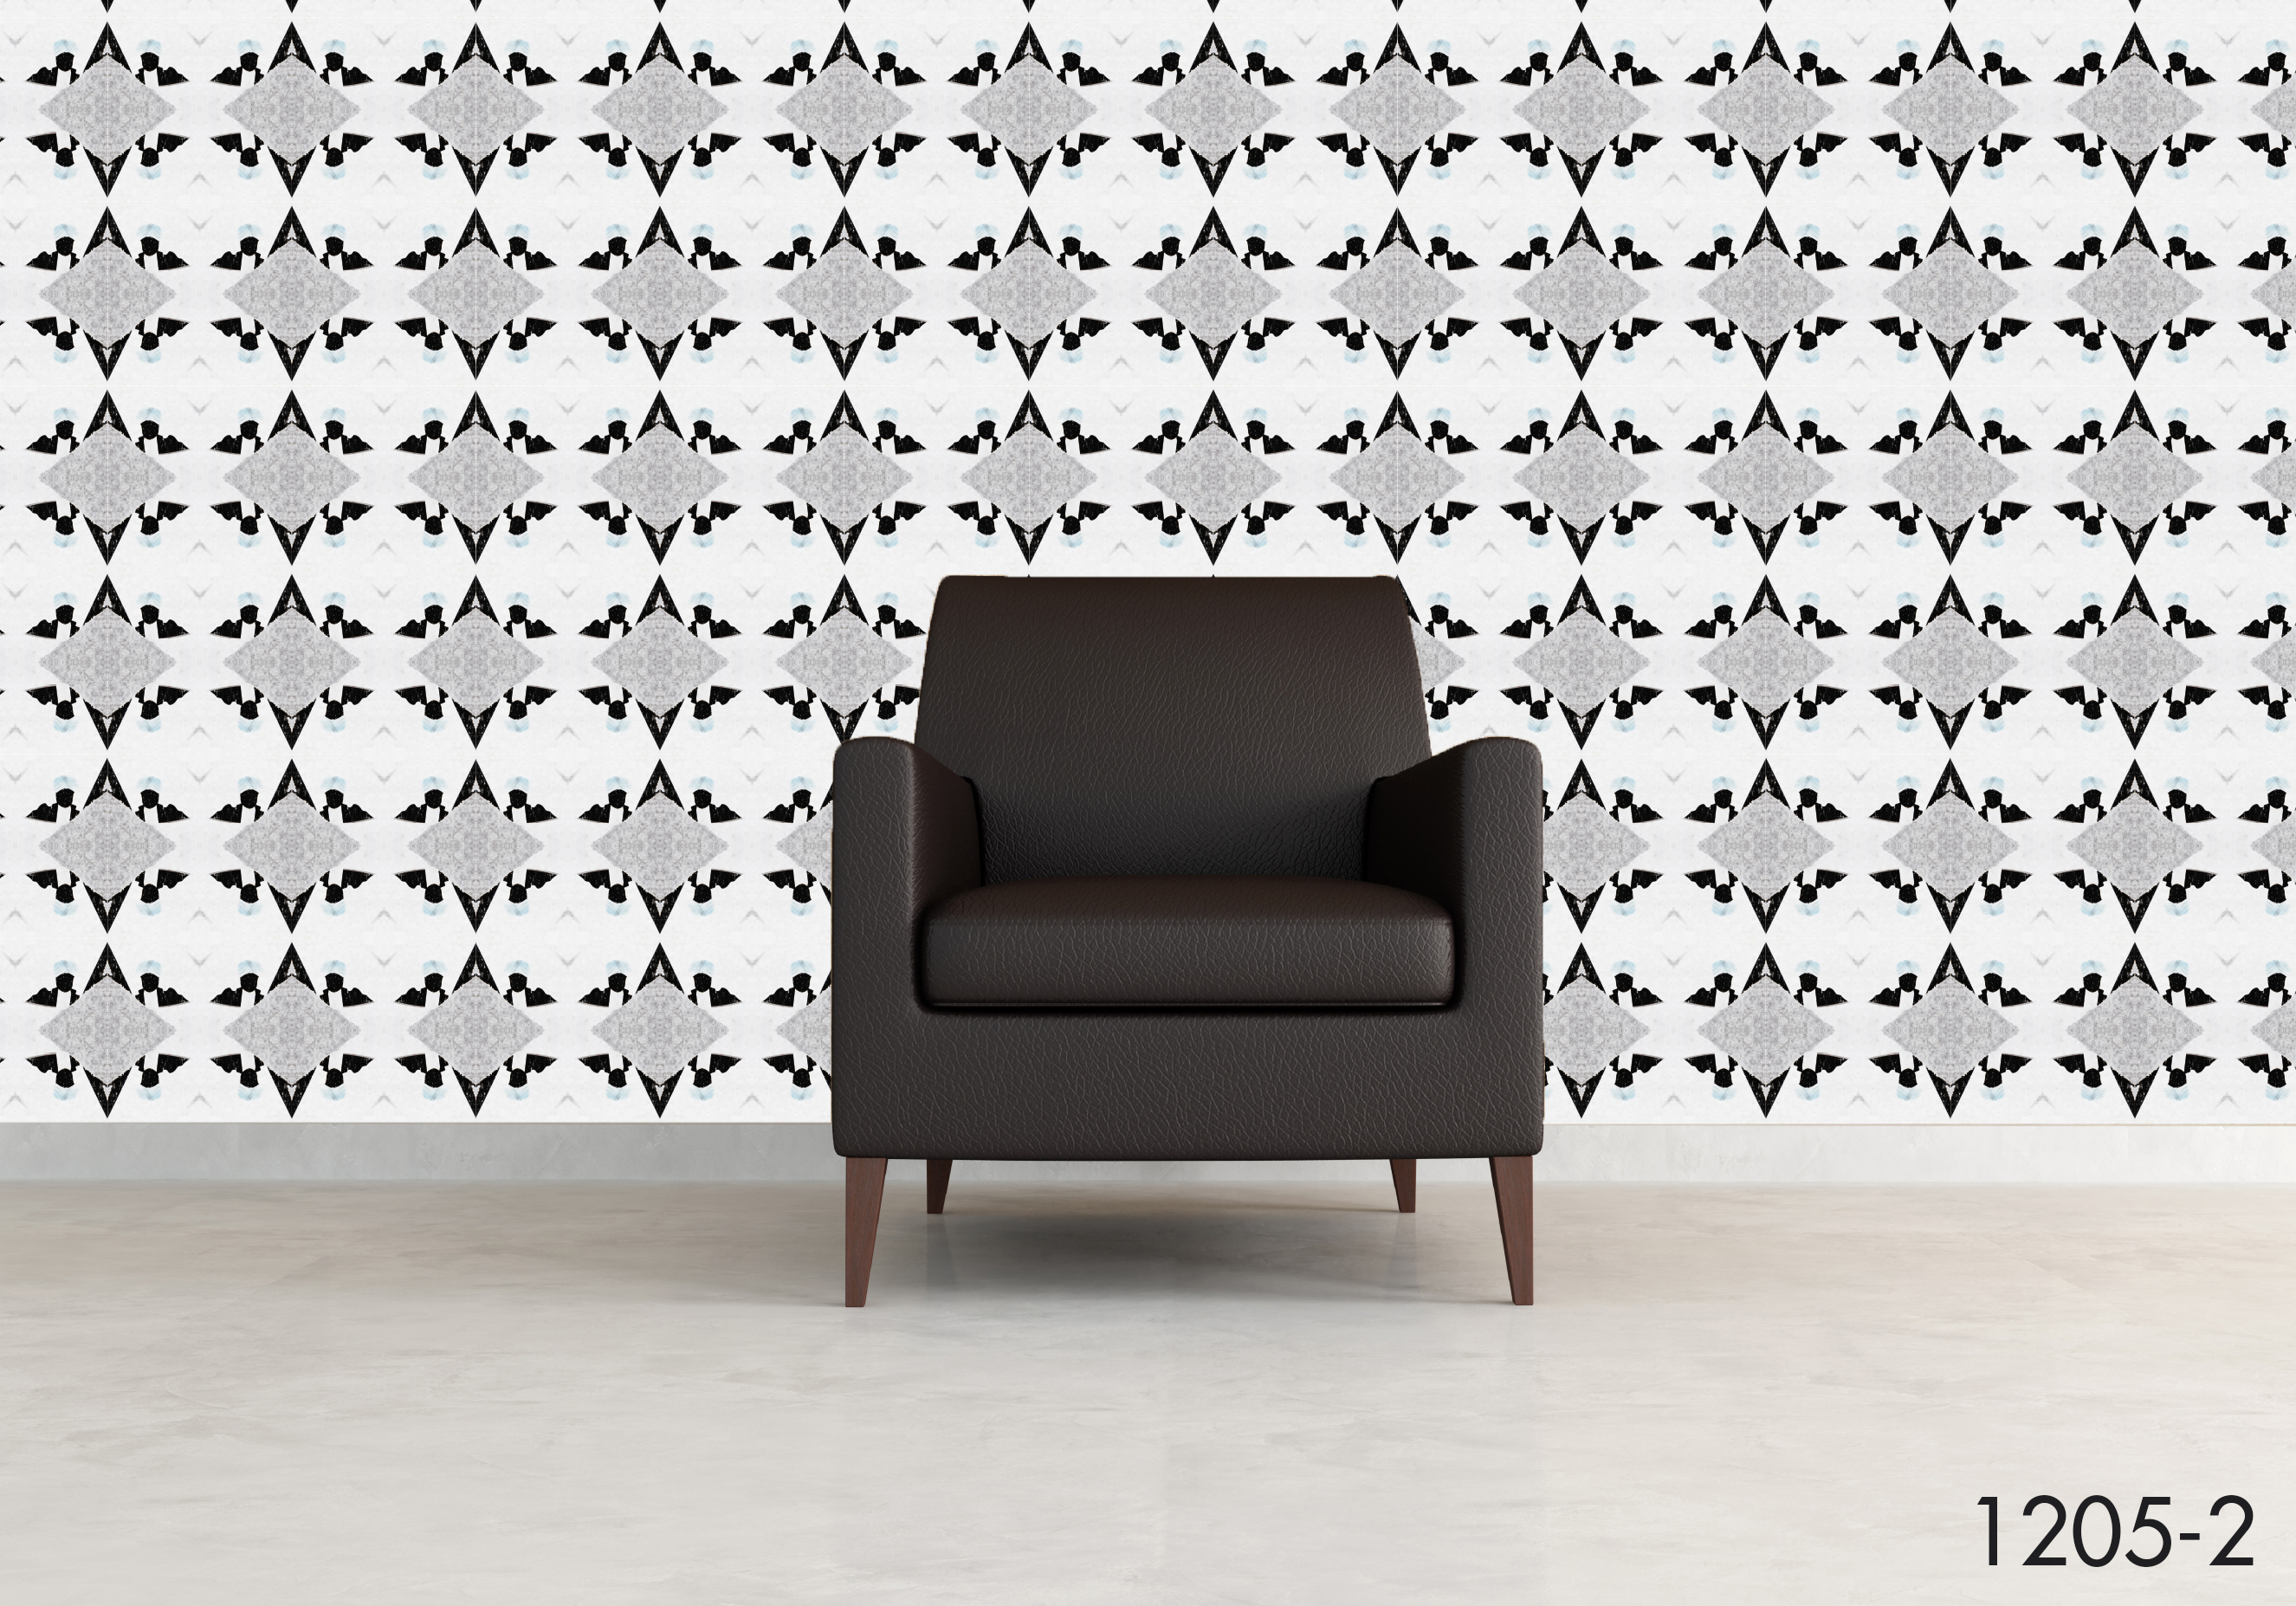 image wallcover